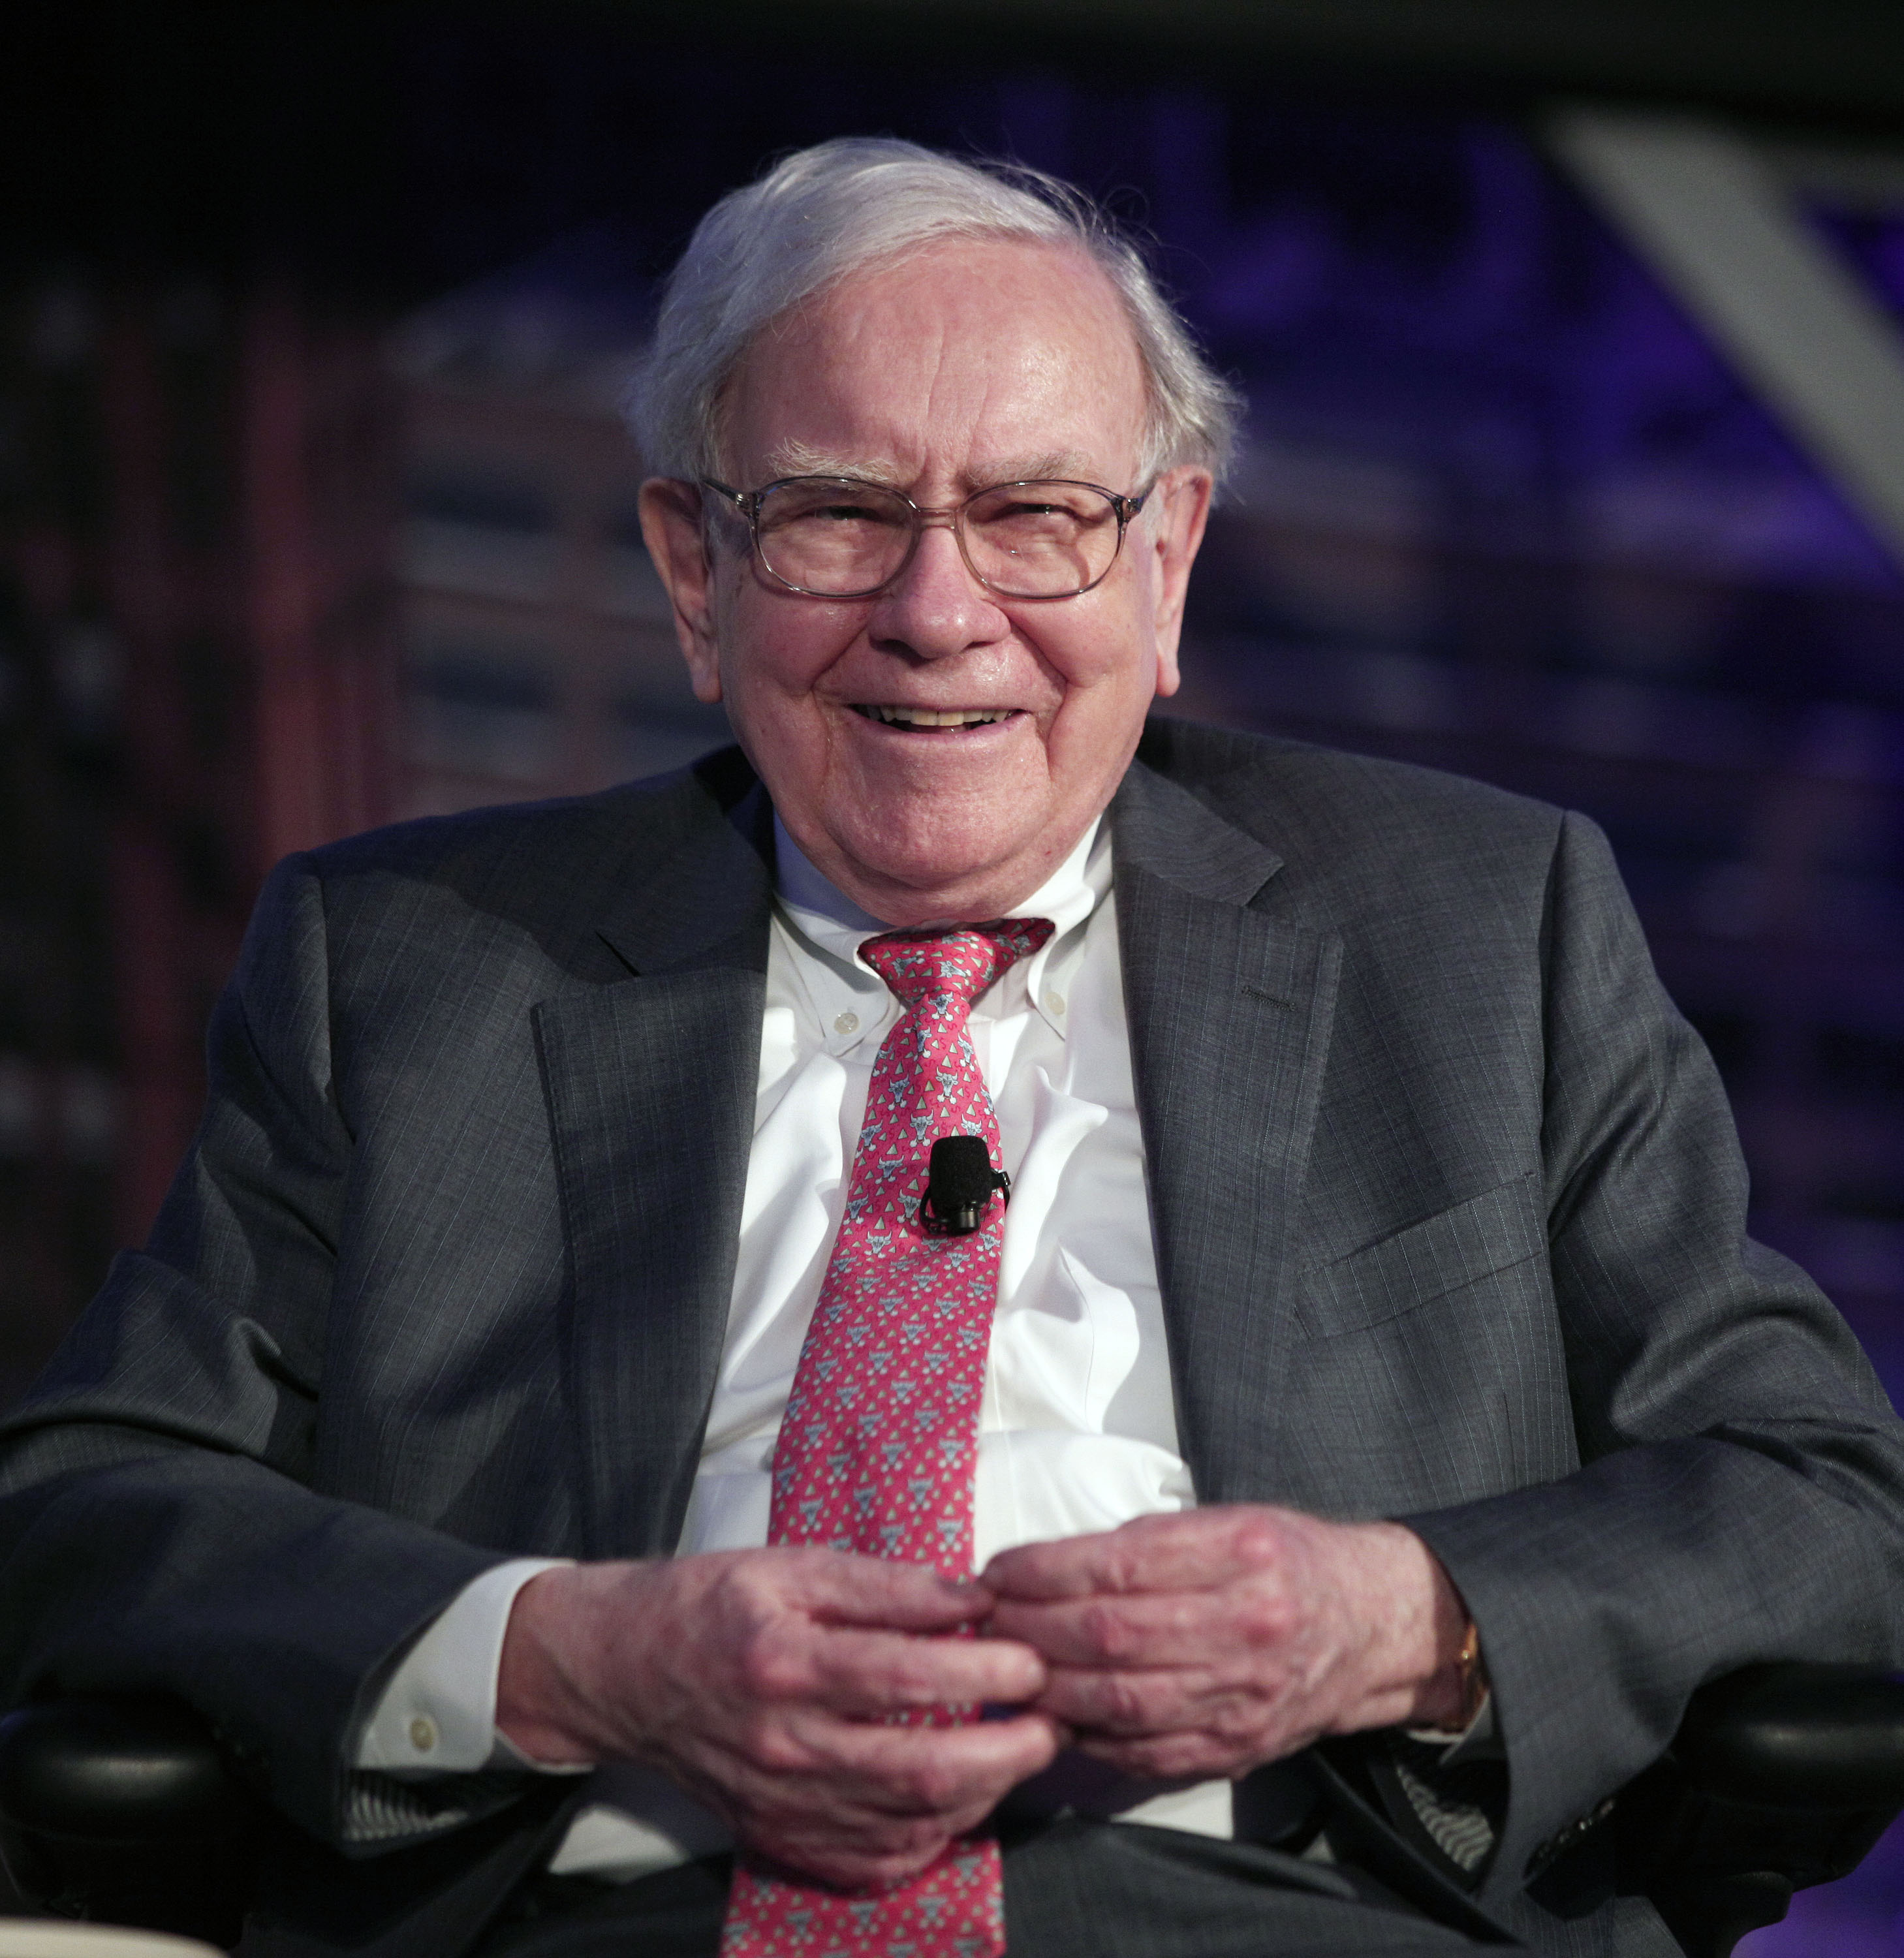 Billionaire investor Warren Buffett speaks at an event called,  Detroit Homecoming  on Sept. 18, 2014 in Detroit.